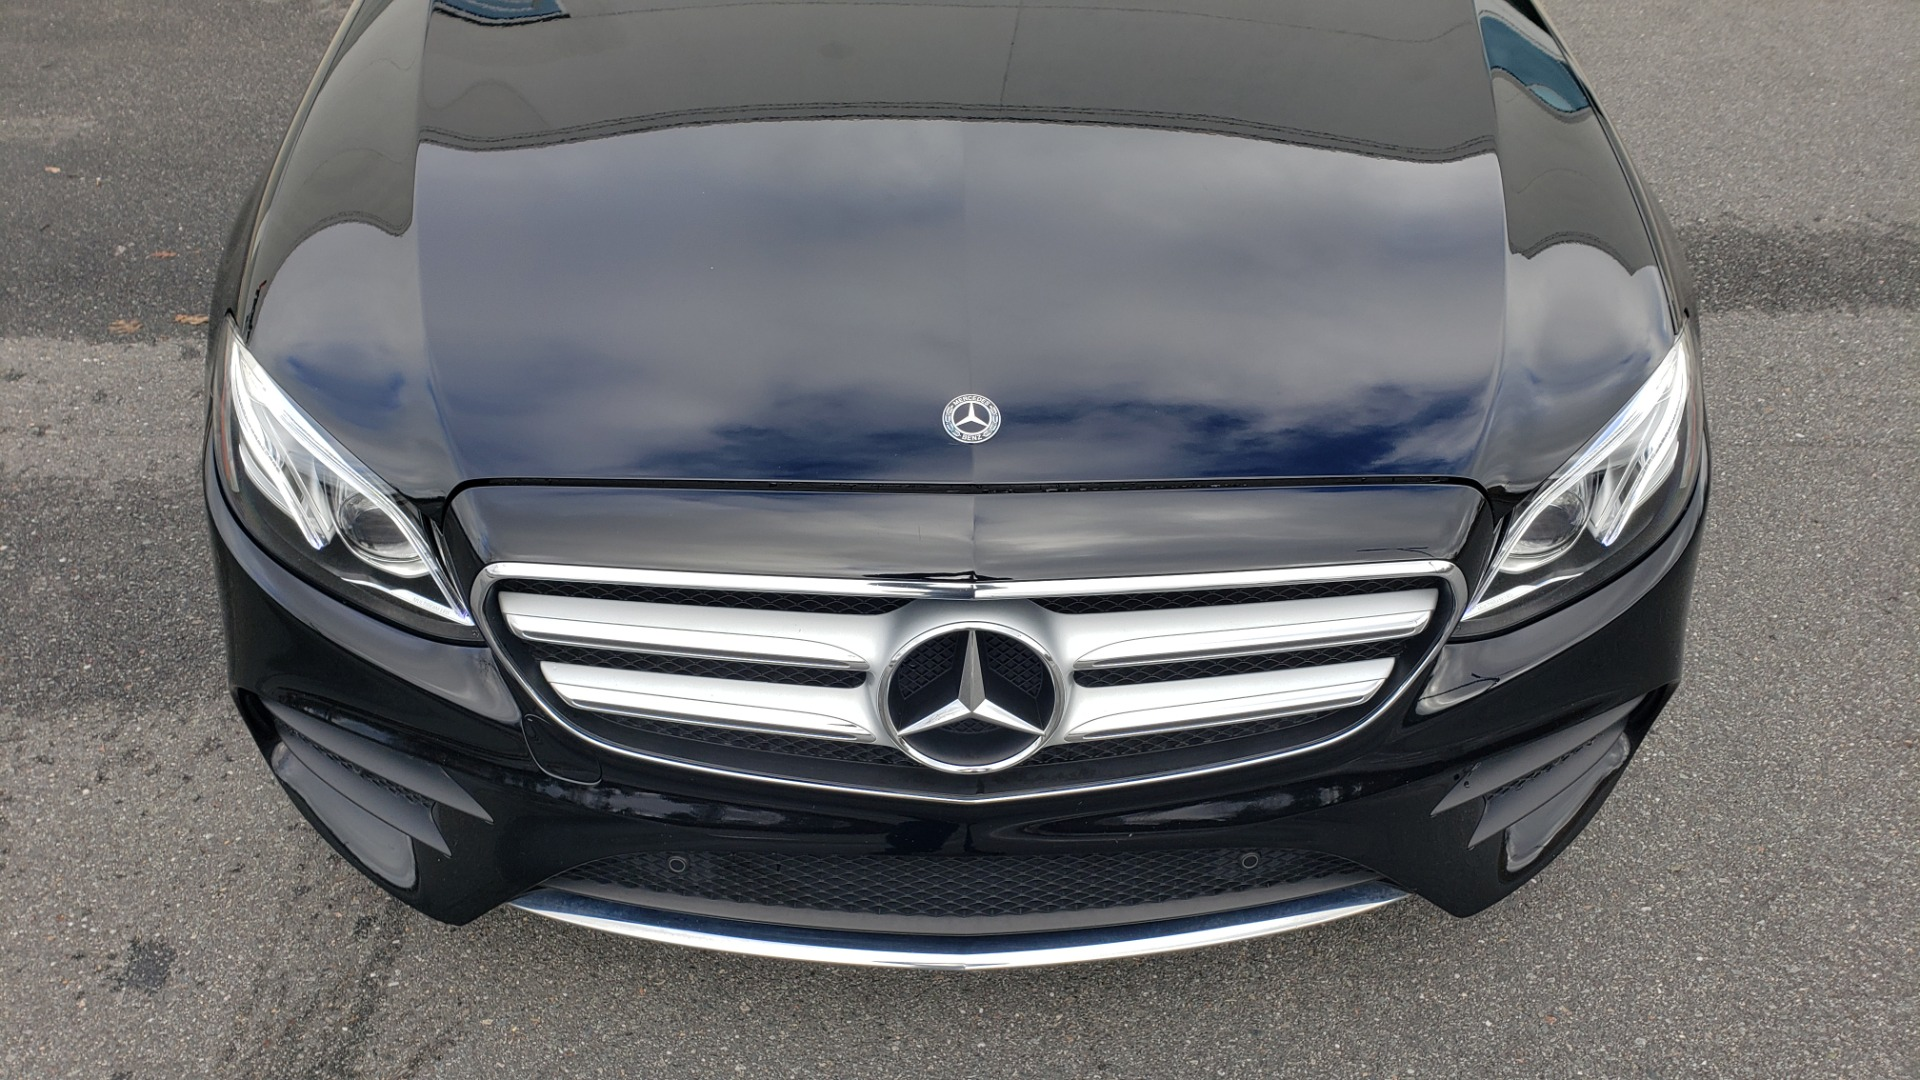 Used 2018 Mercedes-Benz E-CLASS E 300 PREM PKG 2 / NAV / PANO-ROOF / WARMTH & COMFORT PKG for sale $35,295 at Formula Imports in Charlotte NC 28227 23